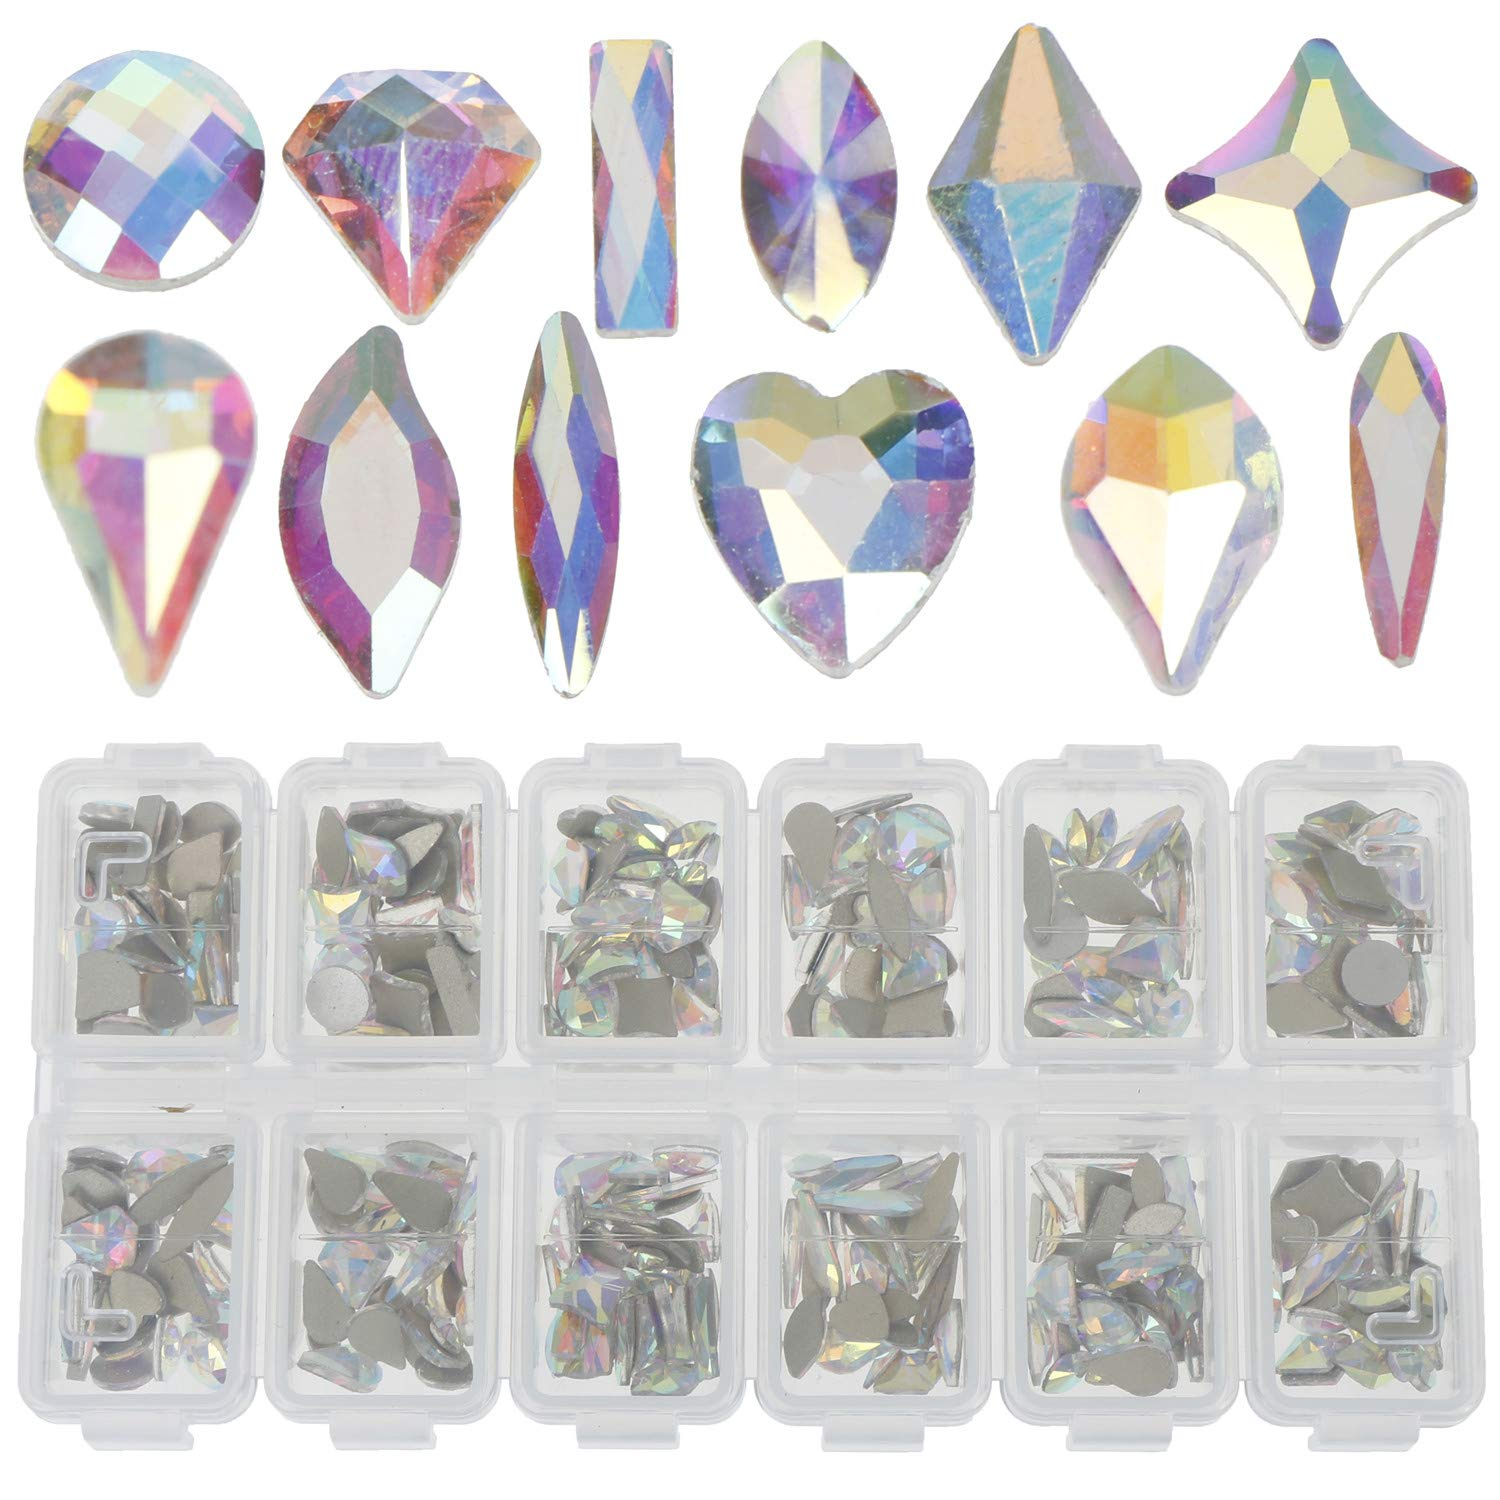 LOCOLO Nail Rhinestones - 300 Pieces Mixed 3D Nail Art Stone AB Crystal Nail Gems for 3D Nail Art Beauty Design DIY Craft by LOCOLO